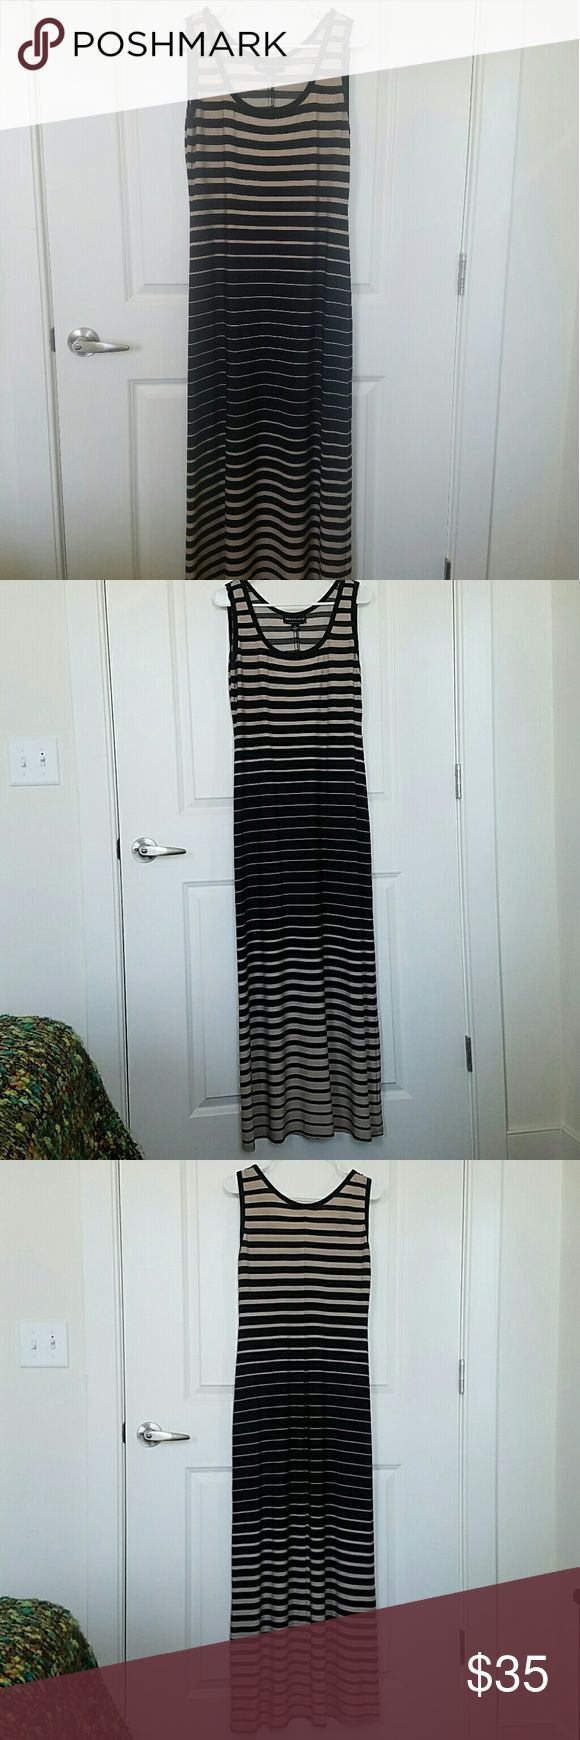 Connected Apparel size 10 stripped maxi dress Black and khaki stripped maxi dress. No snags or tear Dresses Maxi